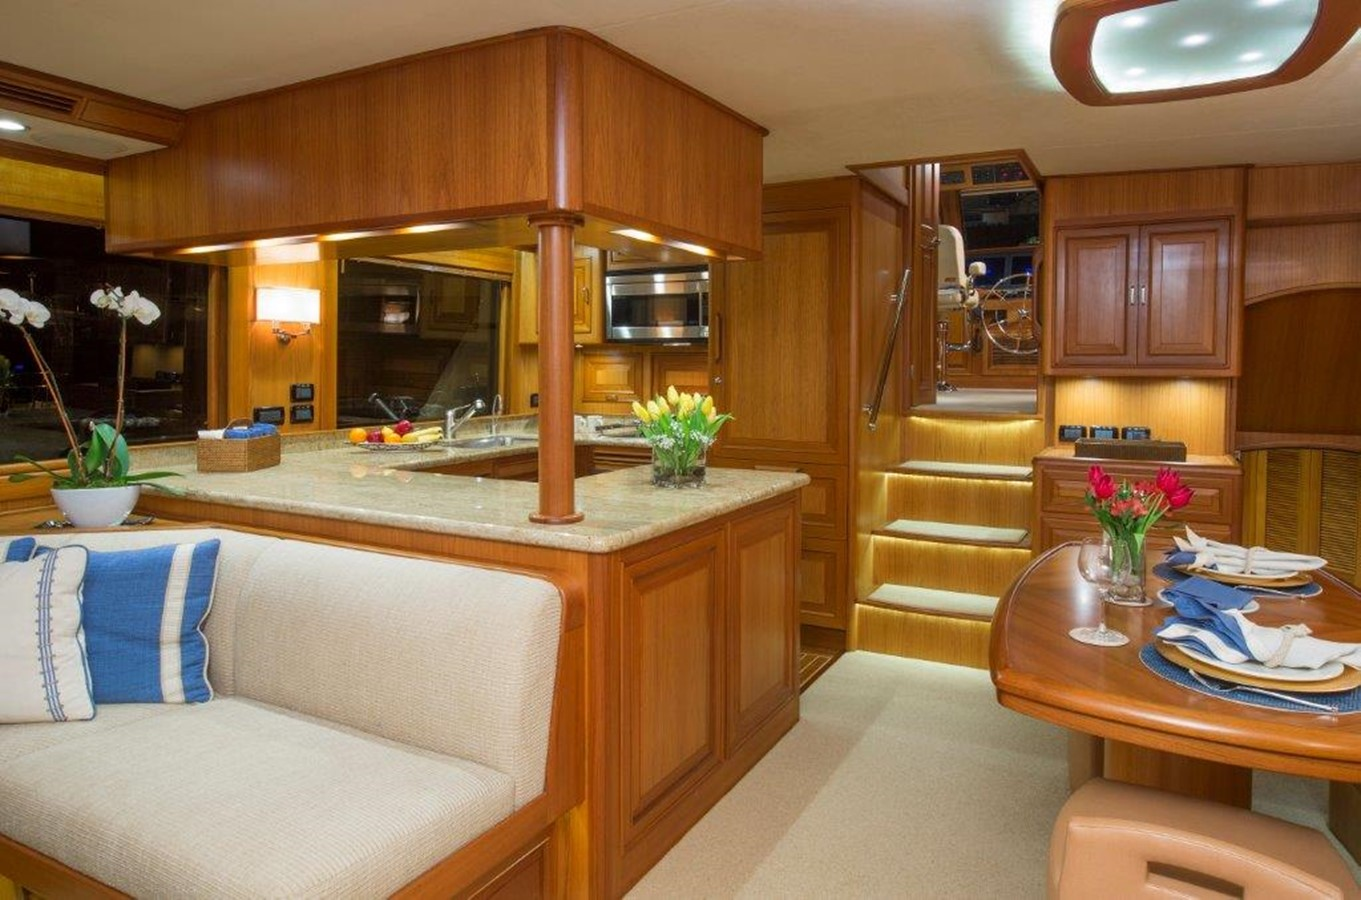 Galley / Dining